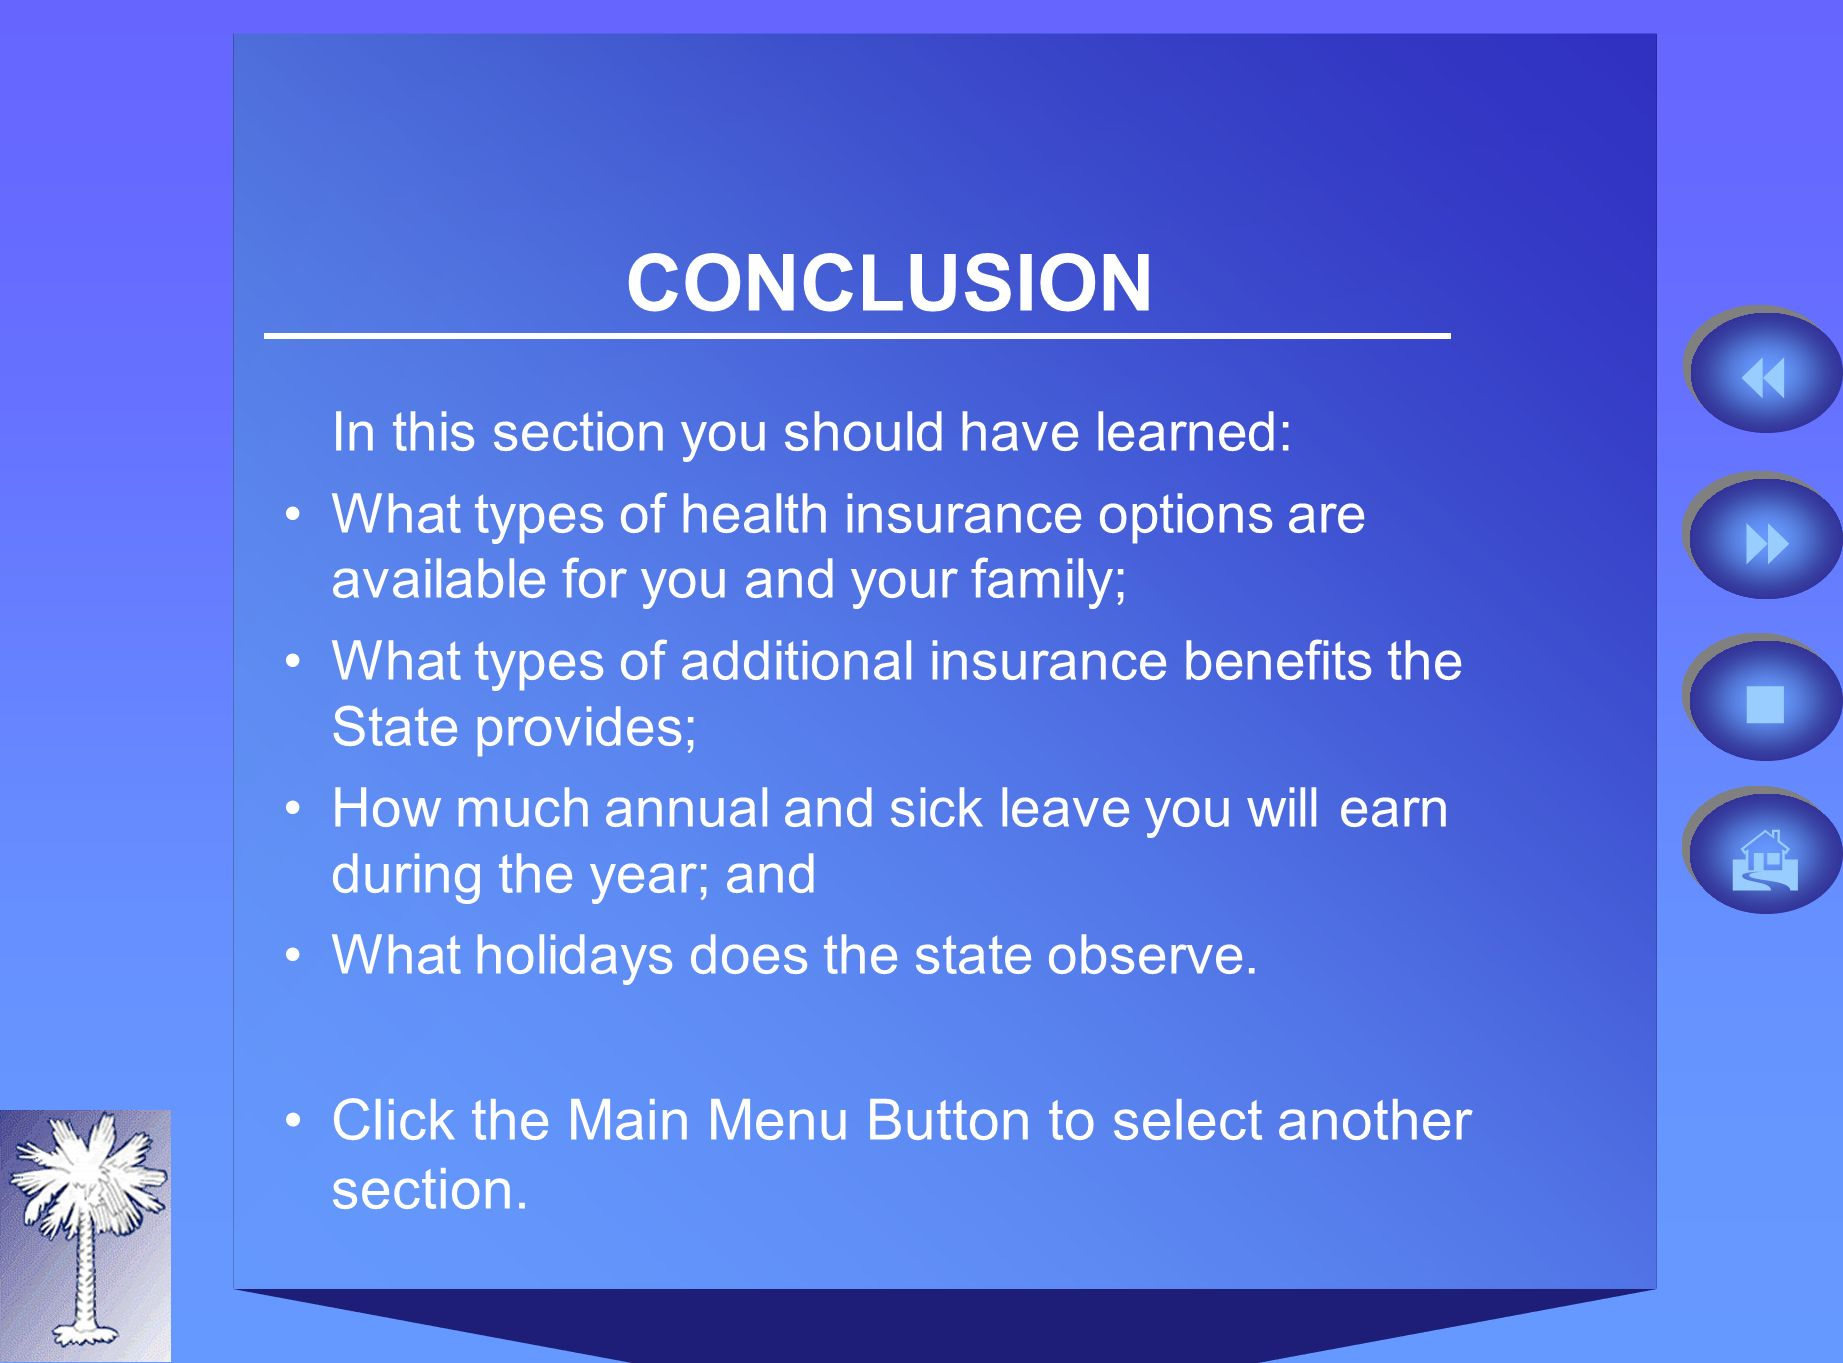 CONCLUSION In this section you should have learned: What types of health insurance options are available for you and your family; What types of additional insurance benefits the State provides; How much annual and sick leave you will earn during the year; and What holidays does the state observe.